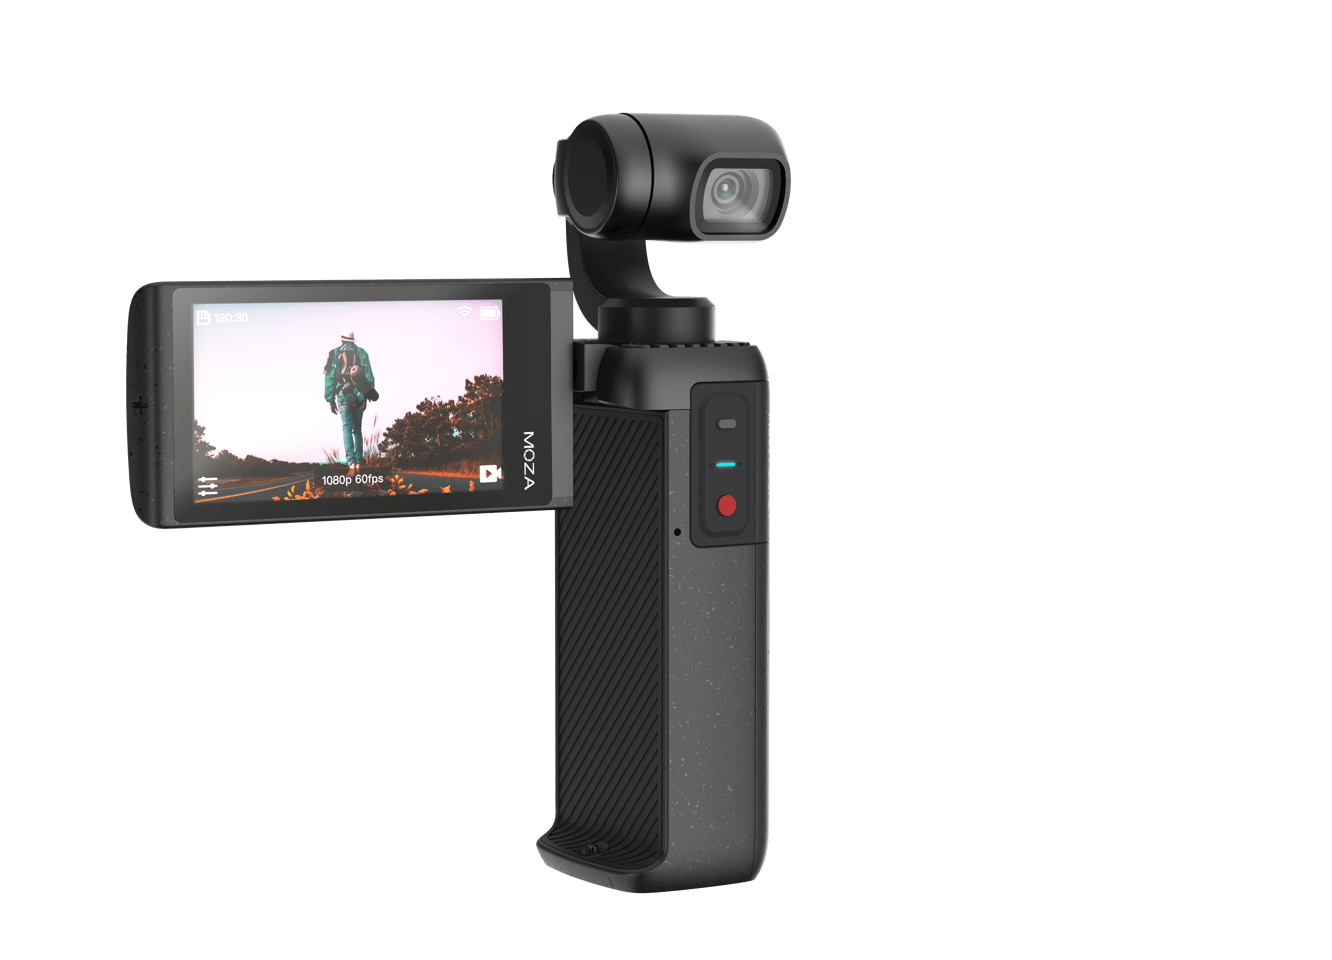 MOIN CAMERA offers an elevated filming experience with built-in high-quality stereo microphones